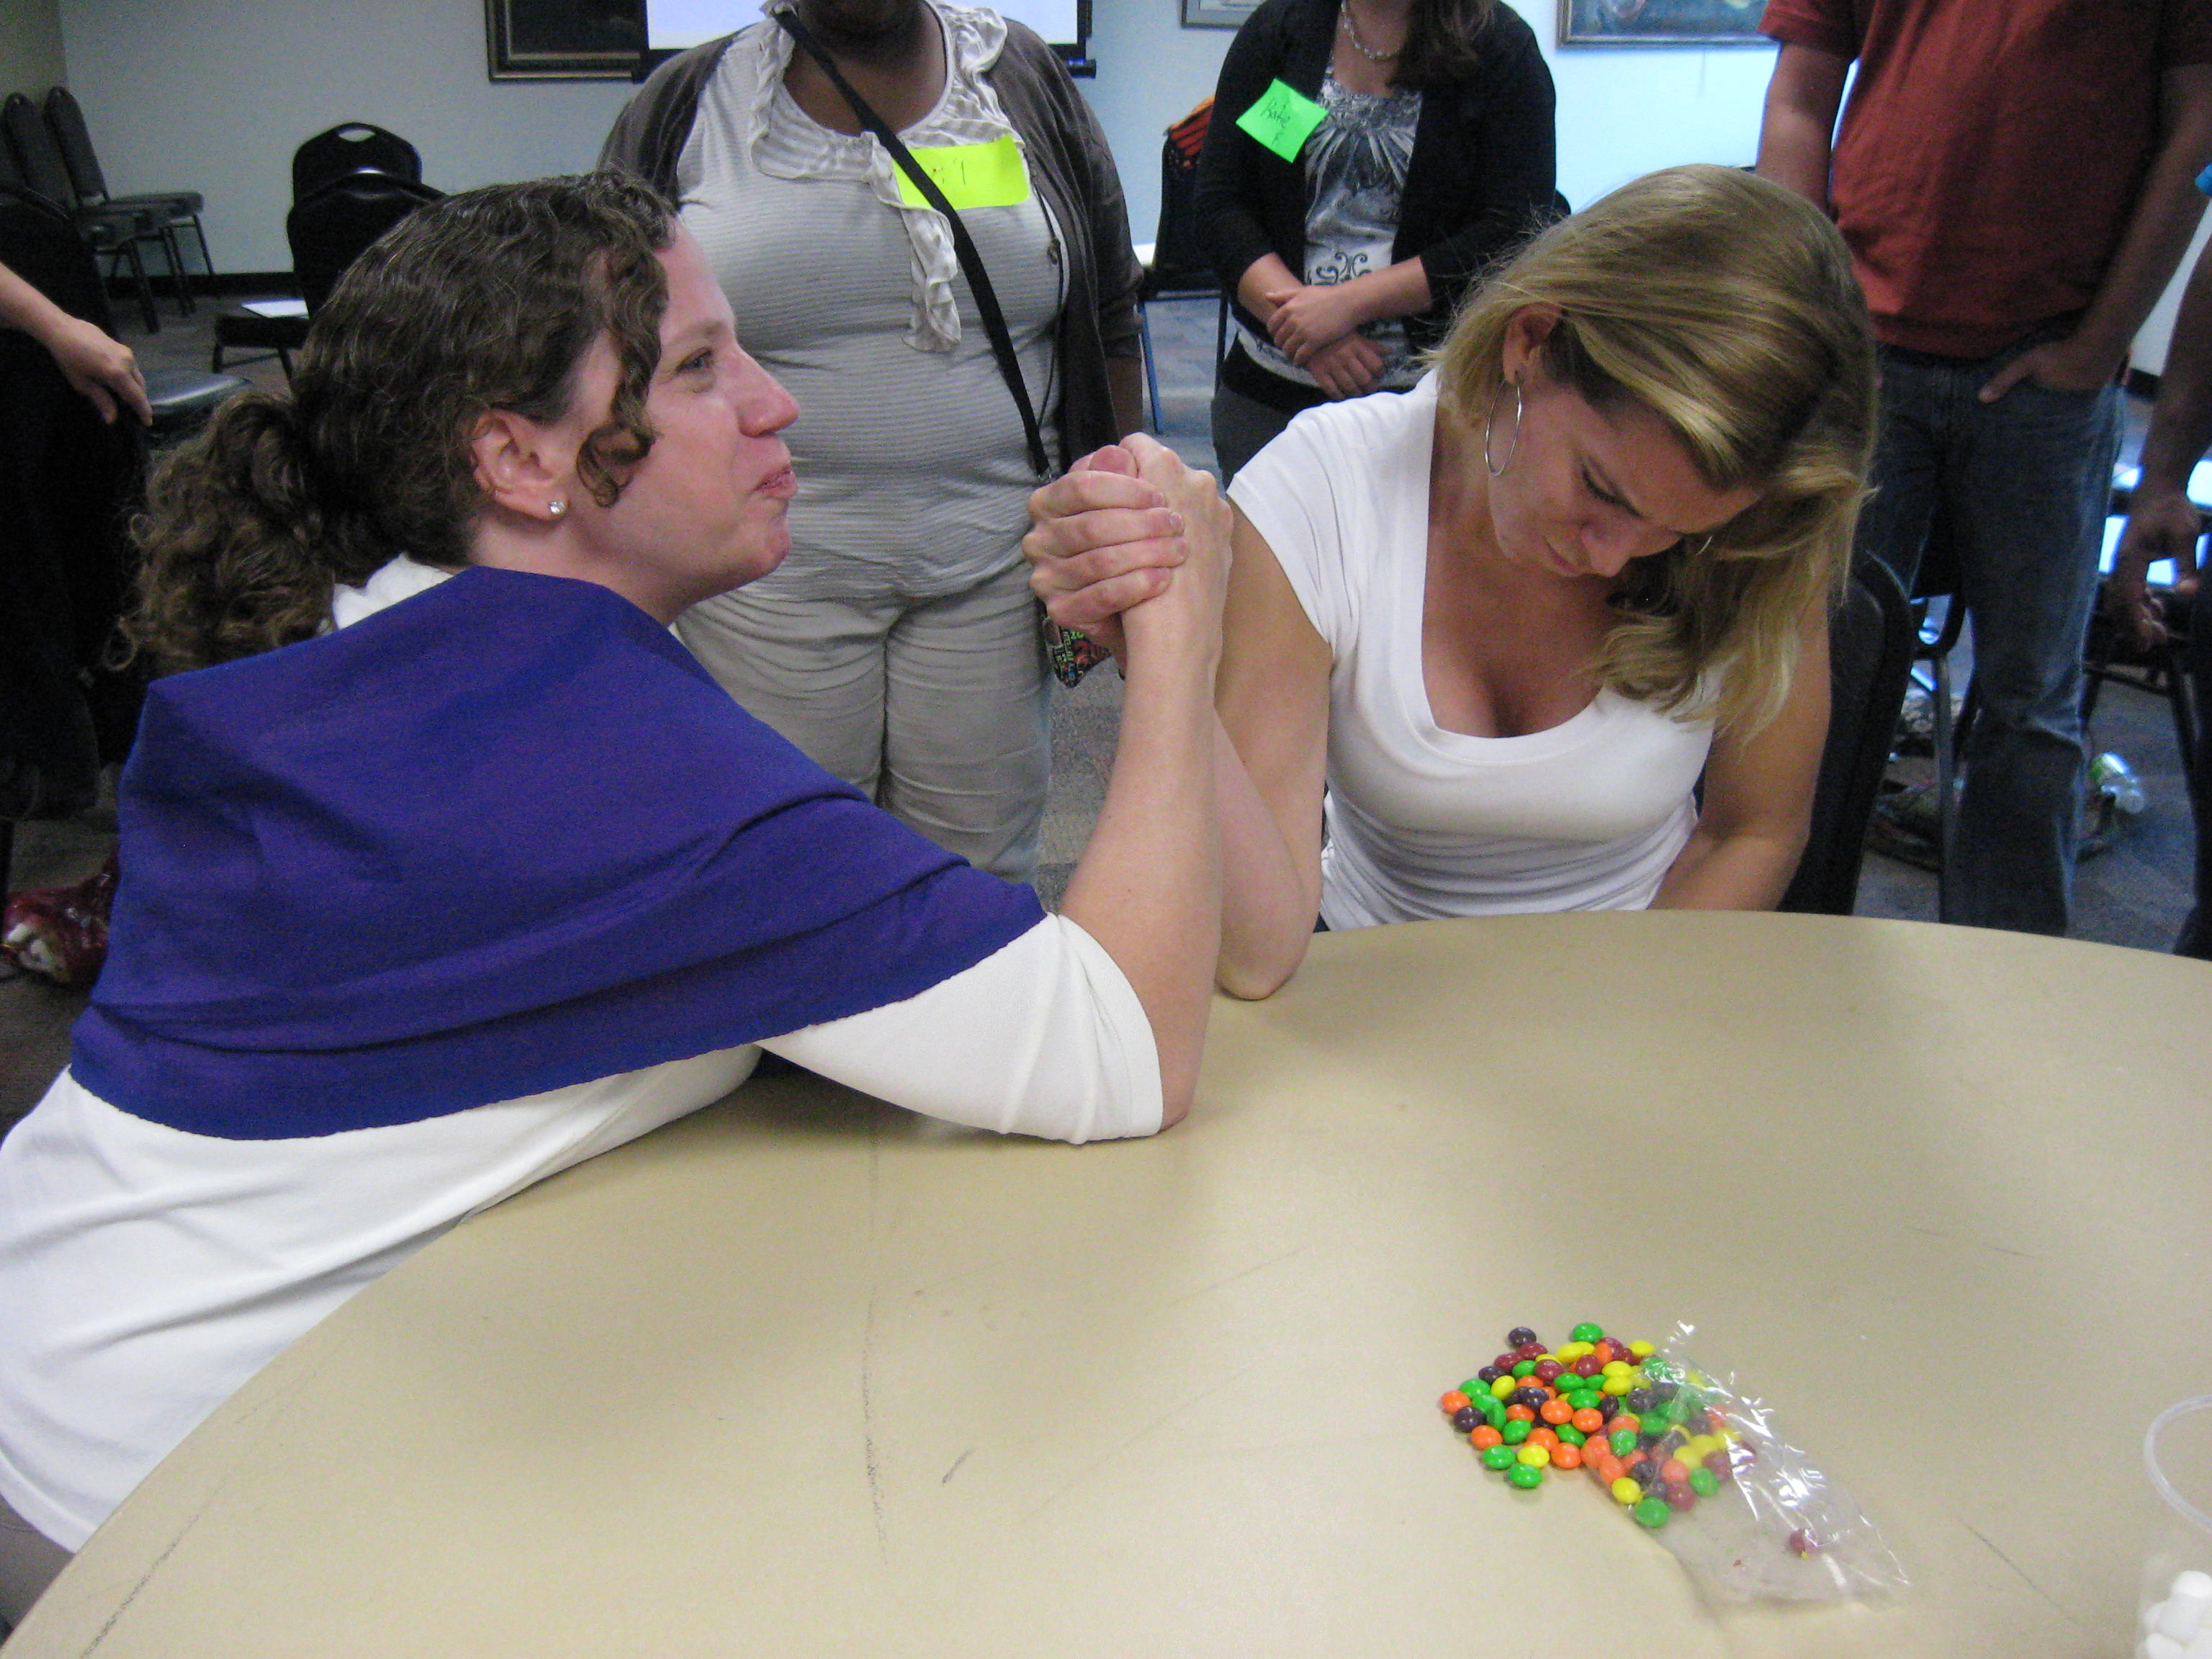 Arm Wrestle for Skittles